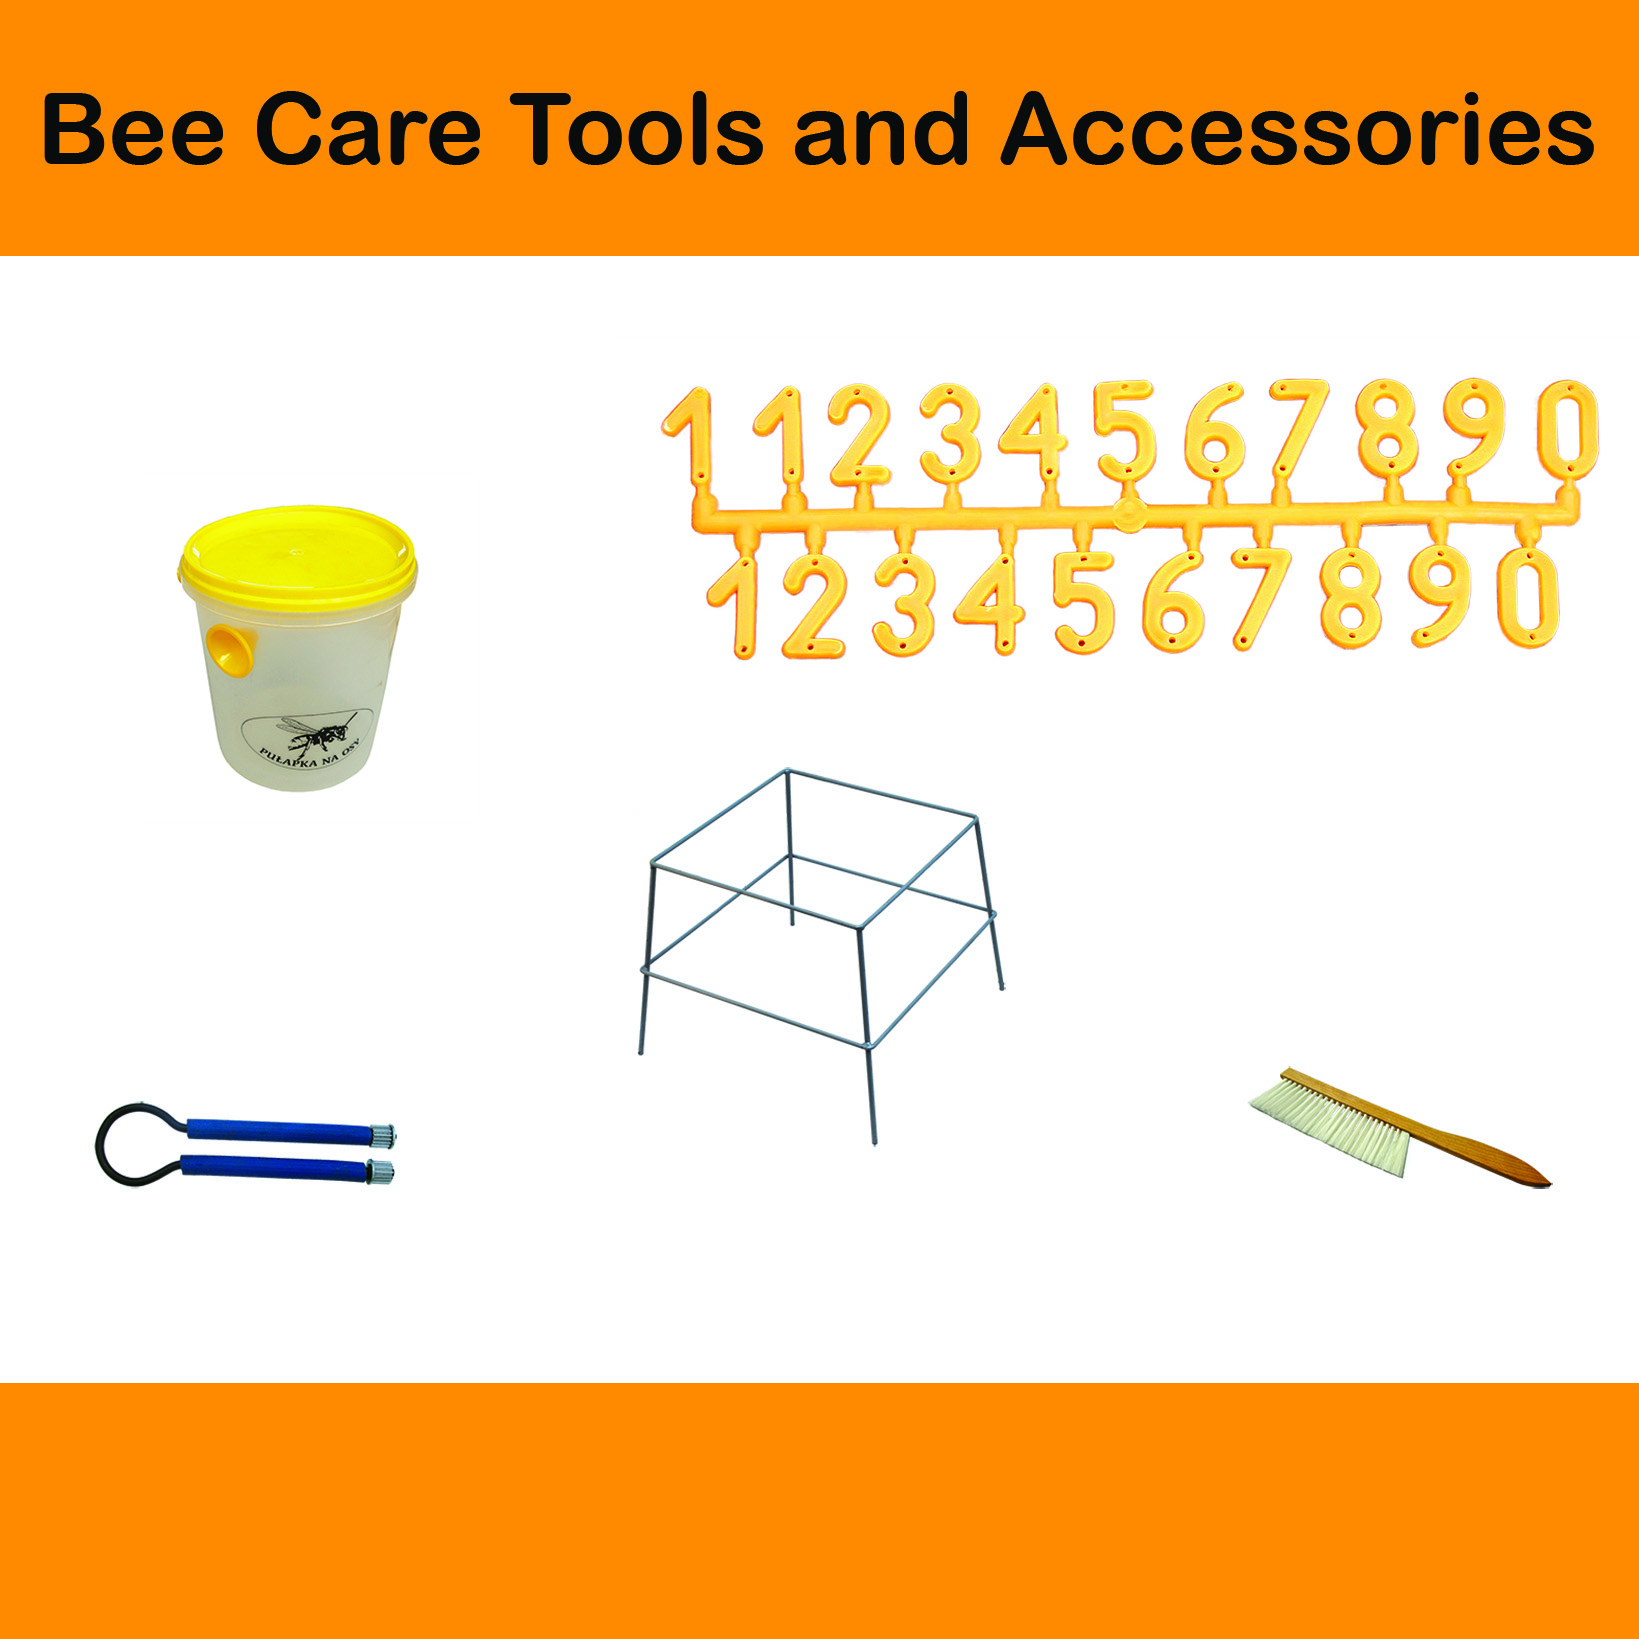 Bee Care Tools and Accessories.jpg